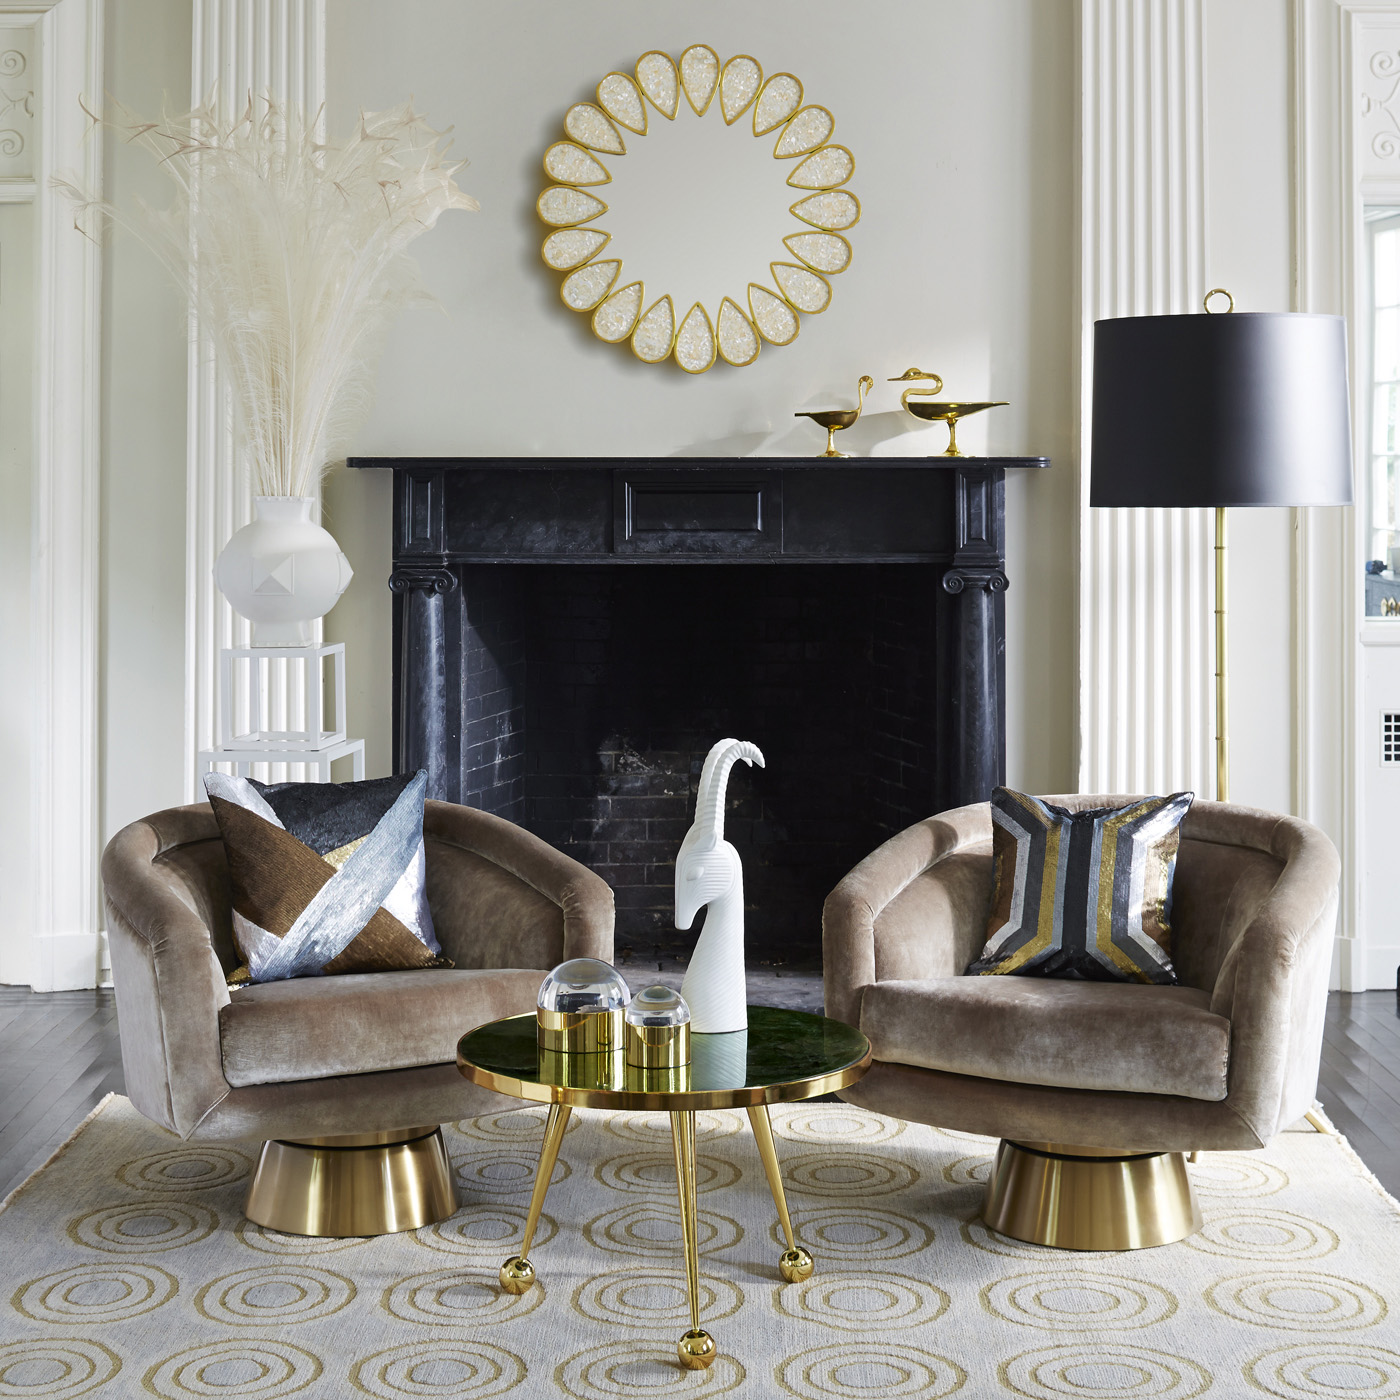 Jonathan Adler  winter living rooms 10 Cheerful Winter Living Rooms by Jonathan Adler 10 Cheerful Winter Living Rooms by Jonathan Adler4